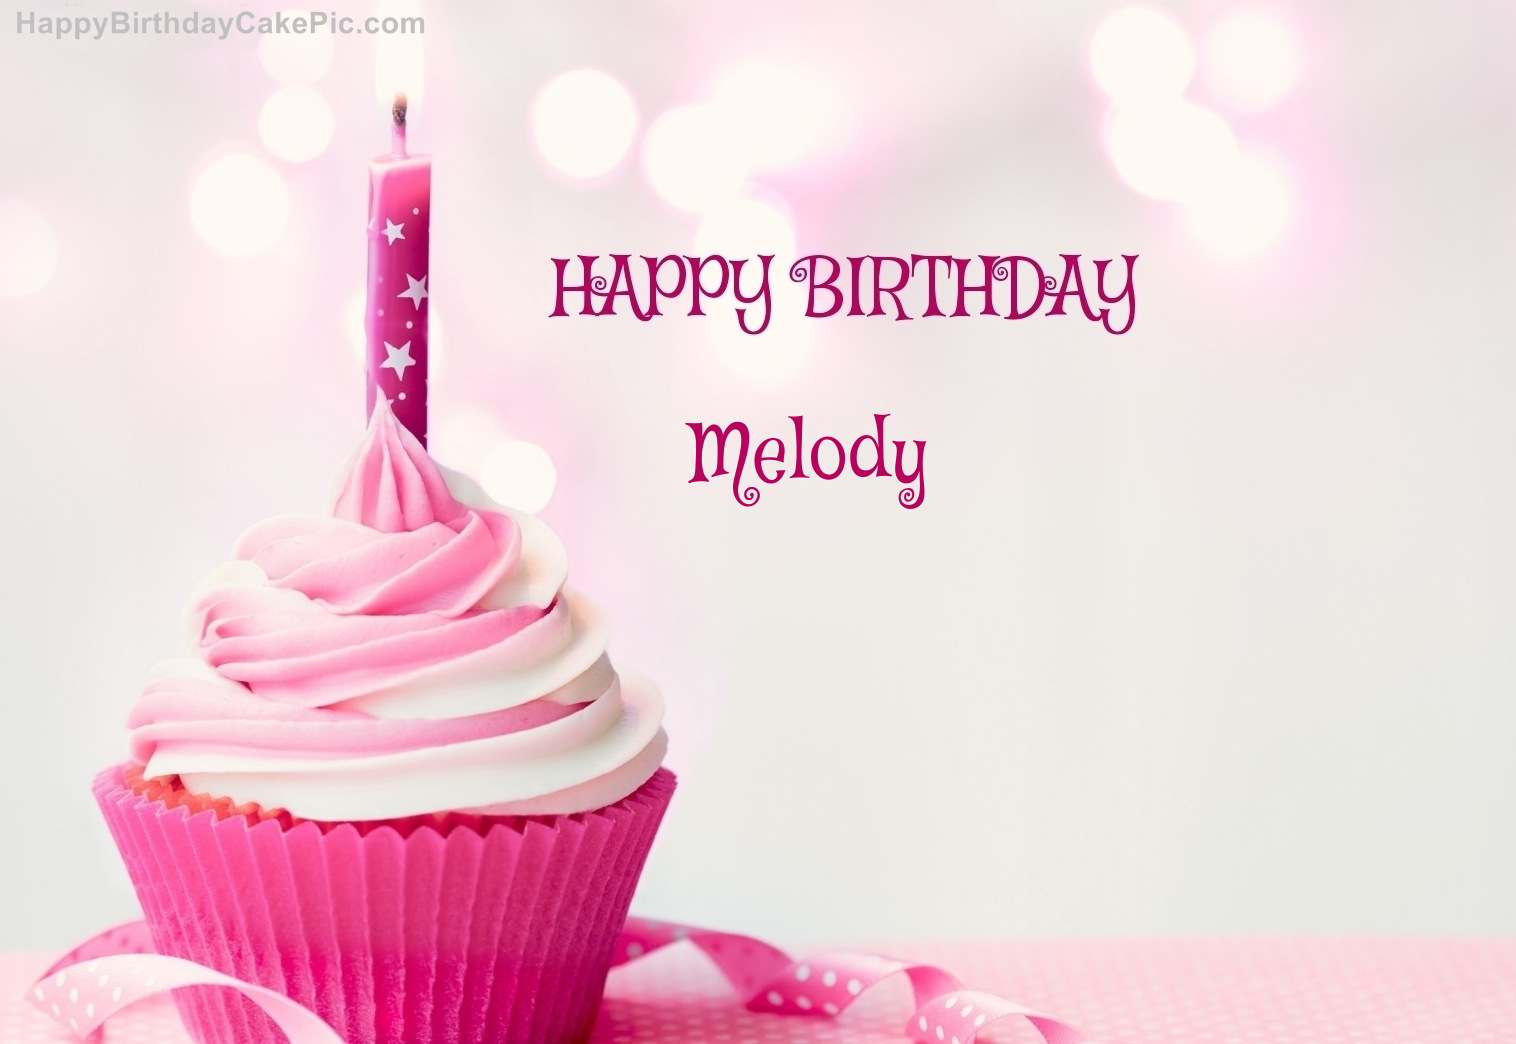 Happy Birthday Cupcake Candle Pink Cake For Melody